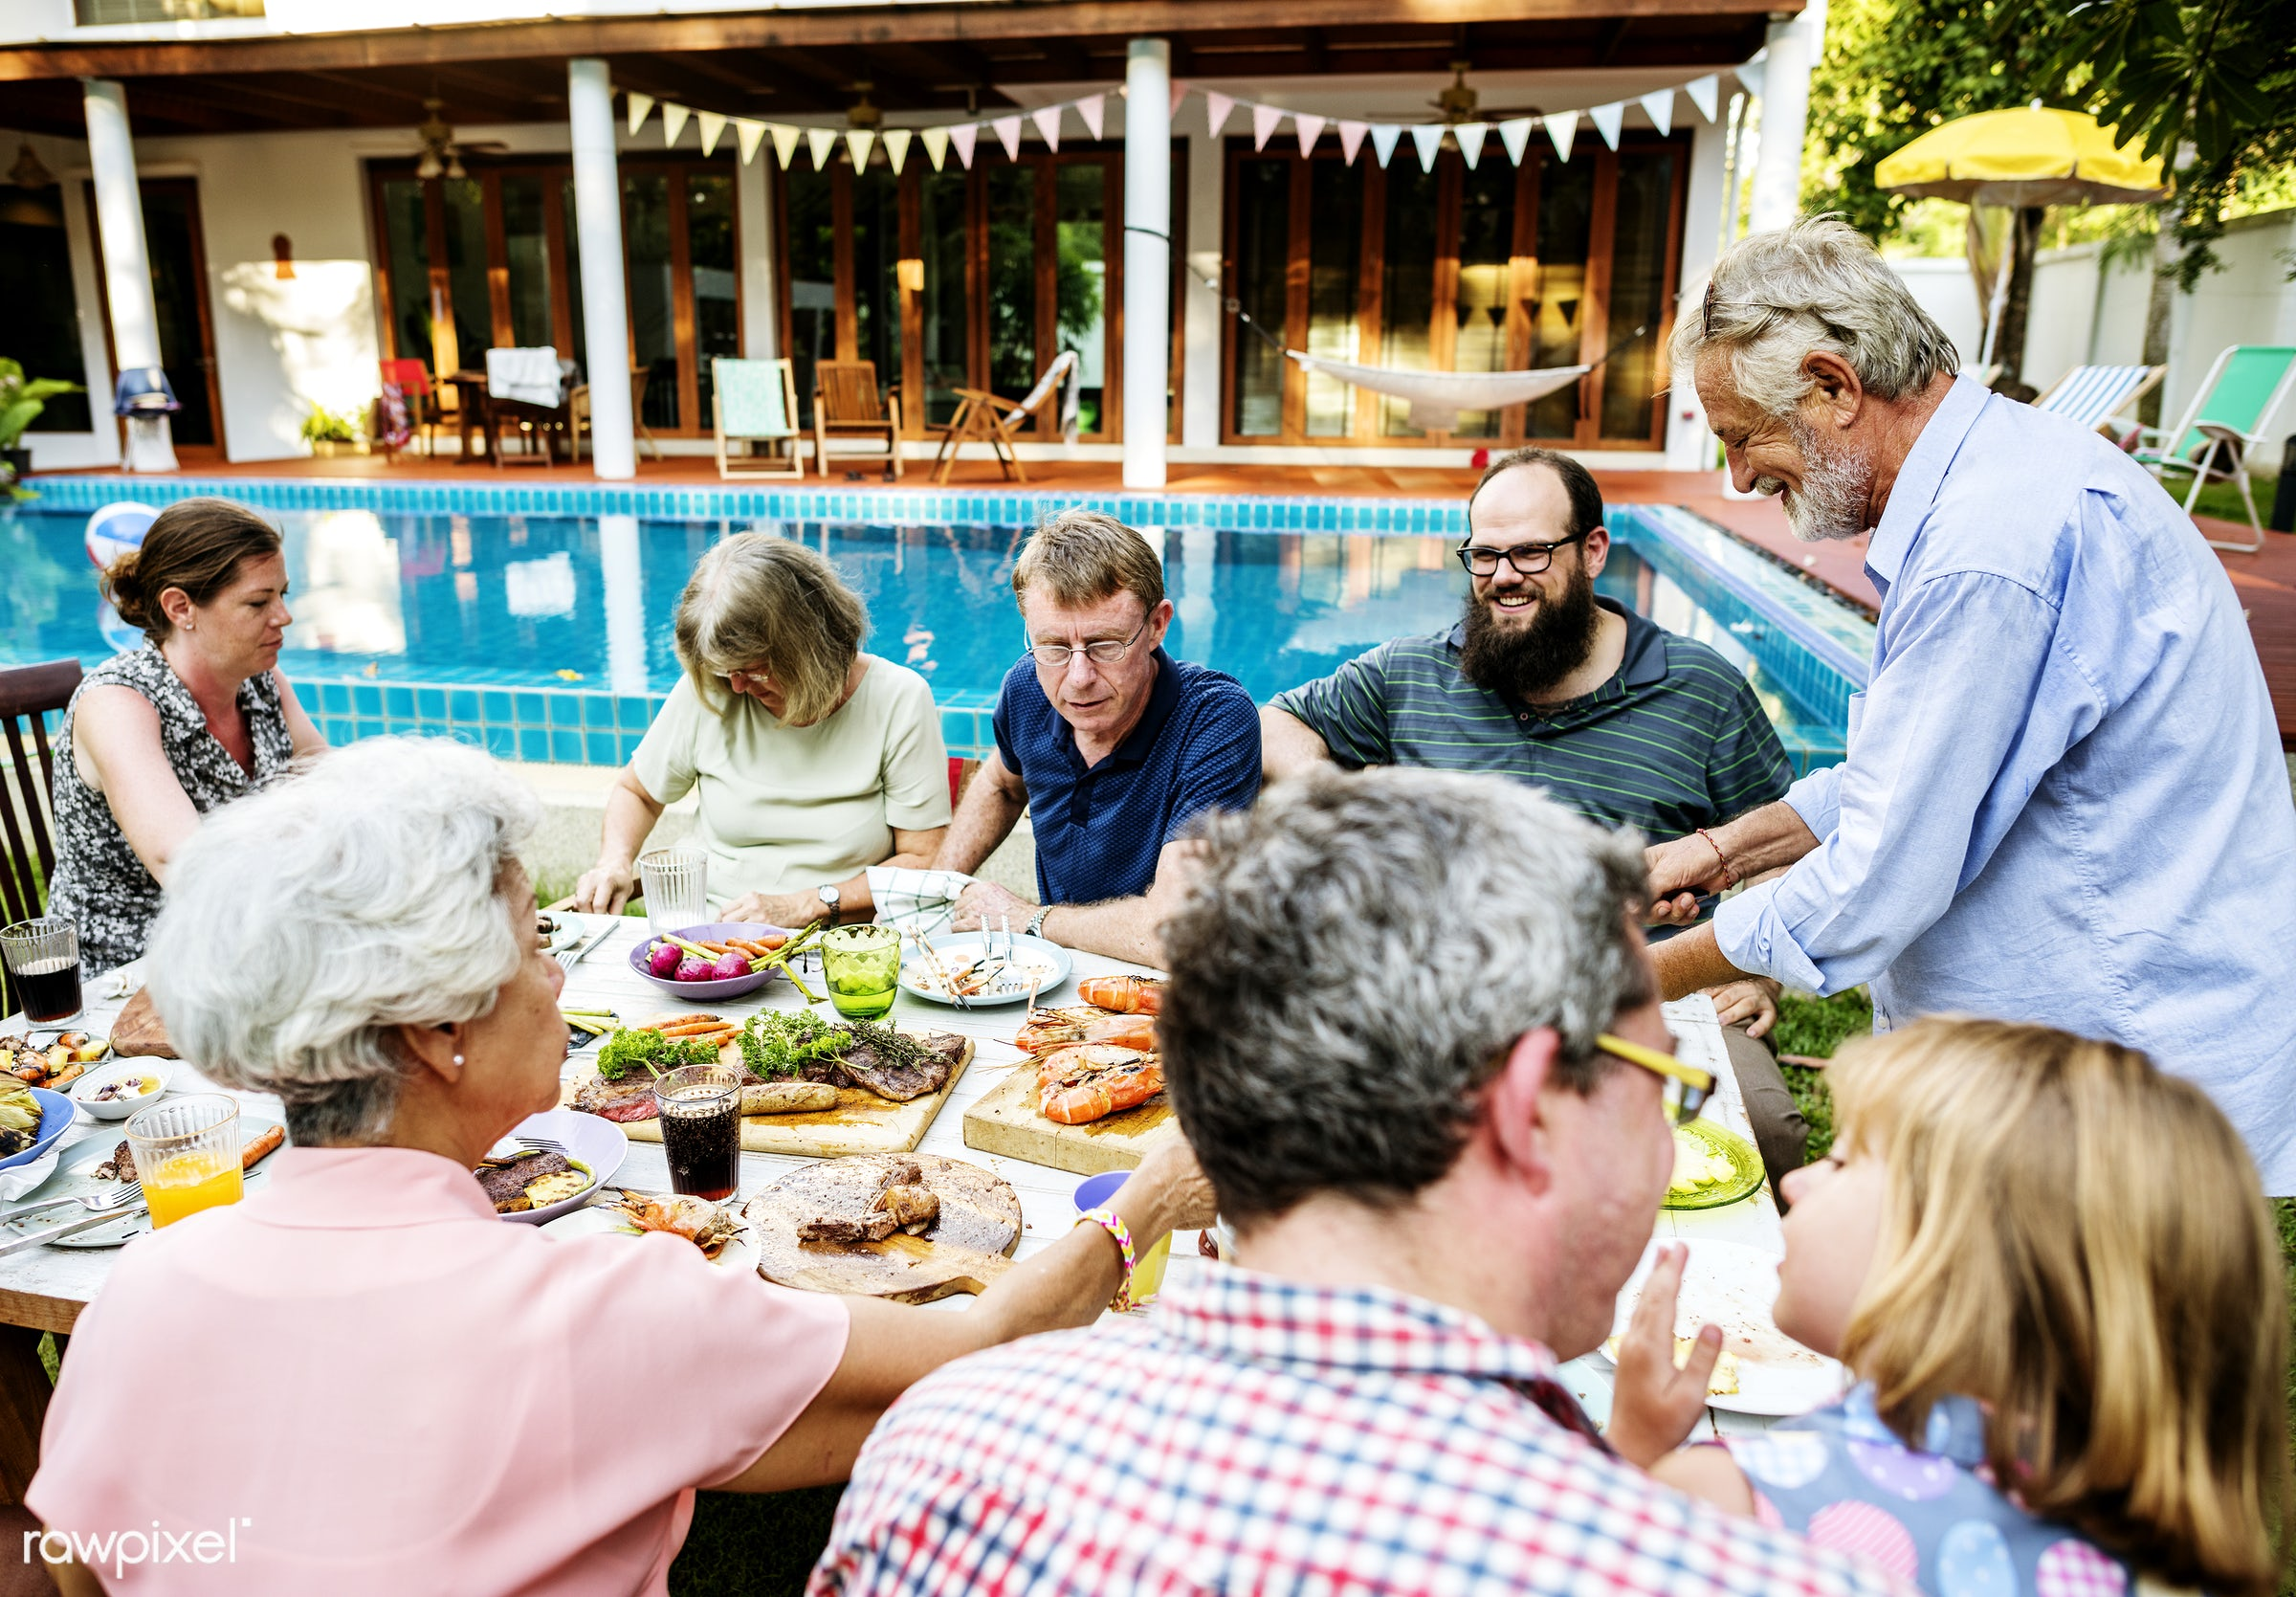 Group of diverse people enjoying barbecue party together - backyard, diverse, eating, family, food, friends, gathering,...